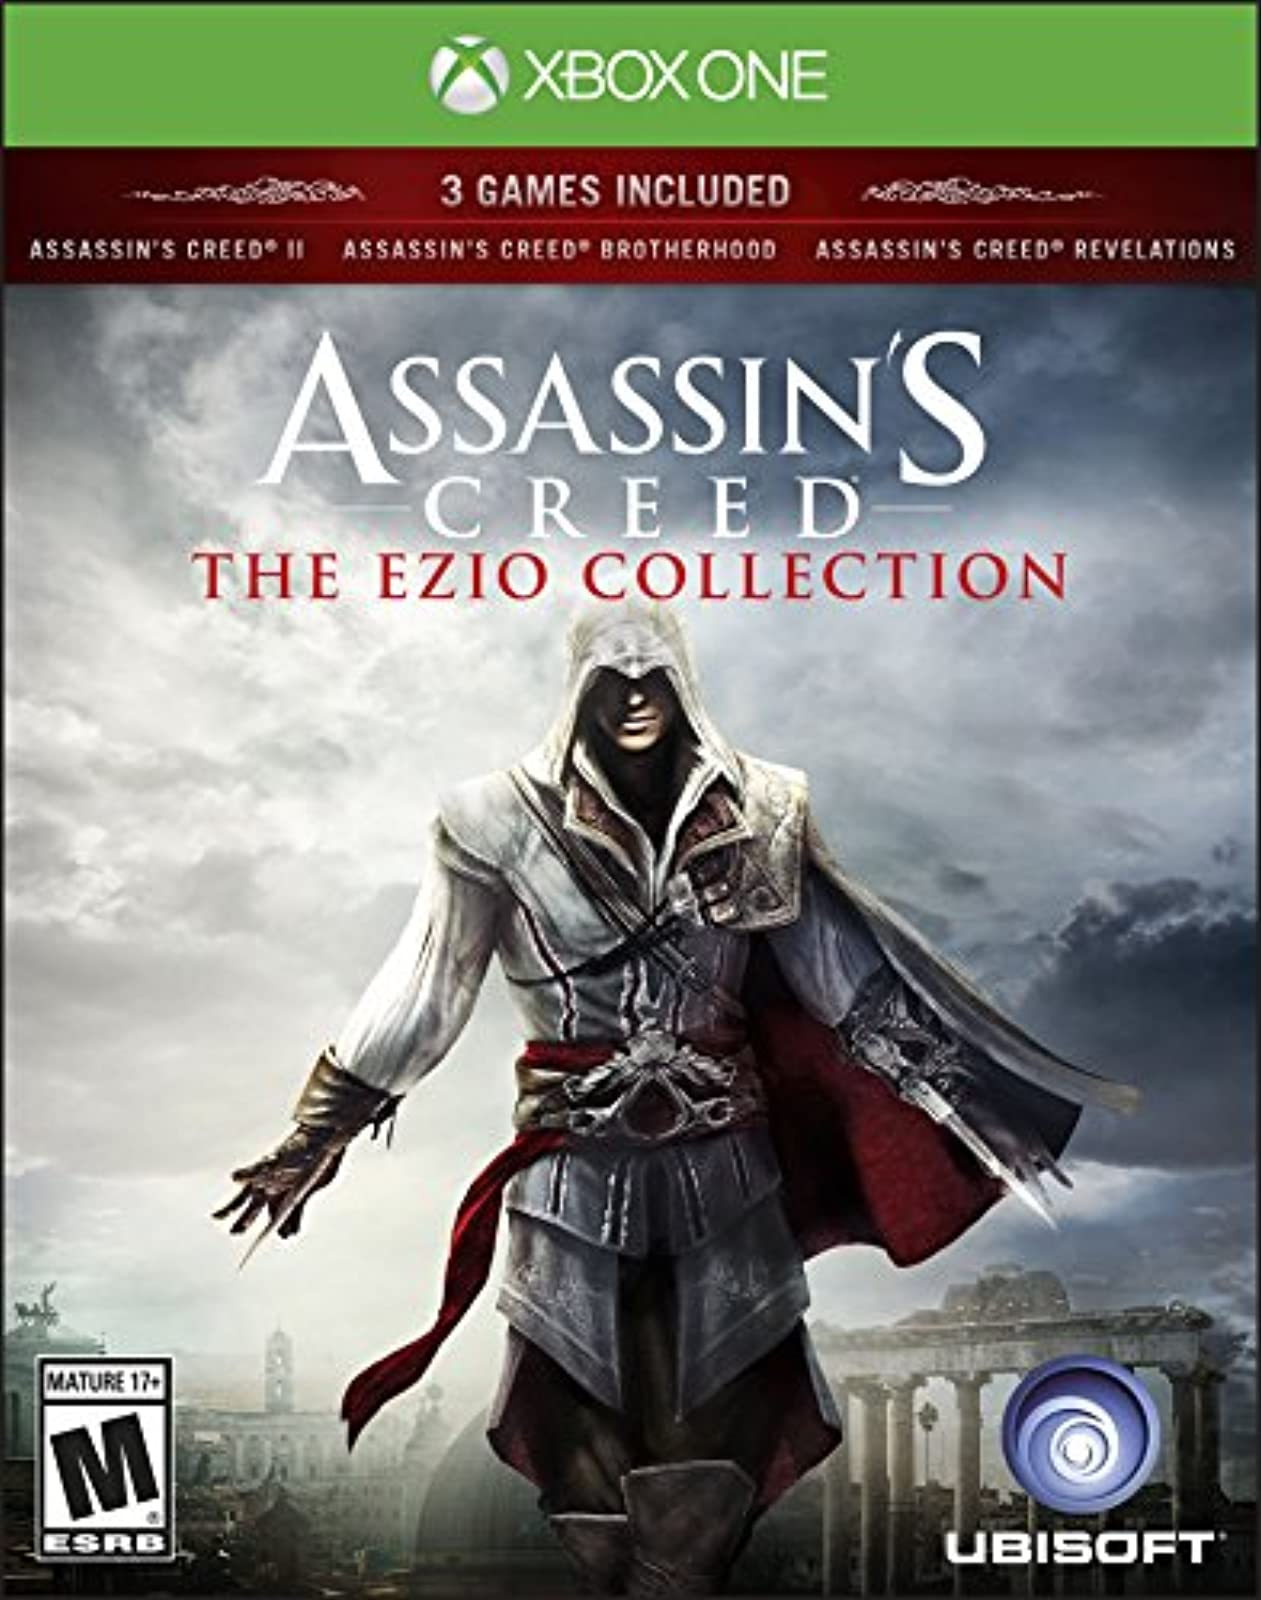 Assassin's Creed The Ezio Collection For Xbox One